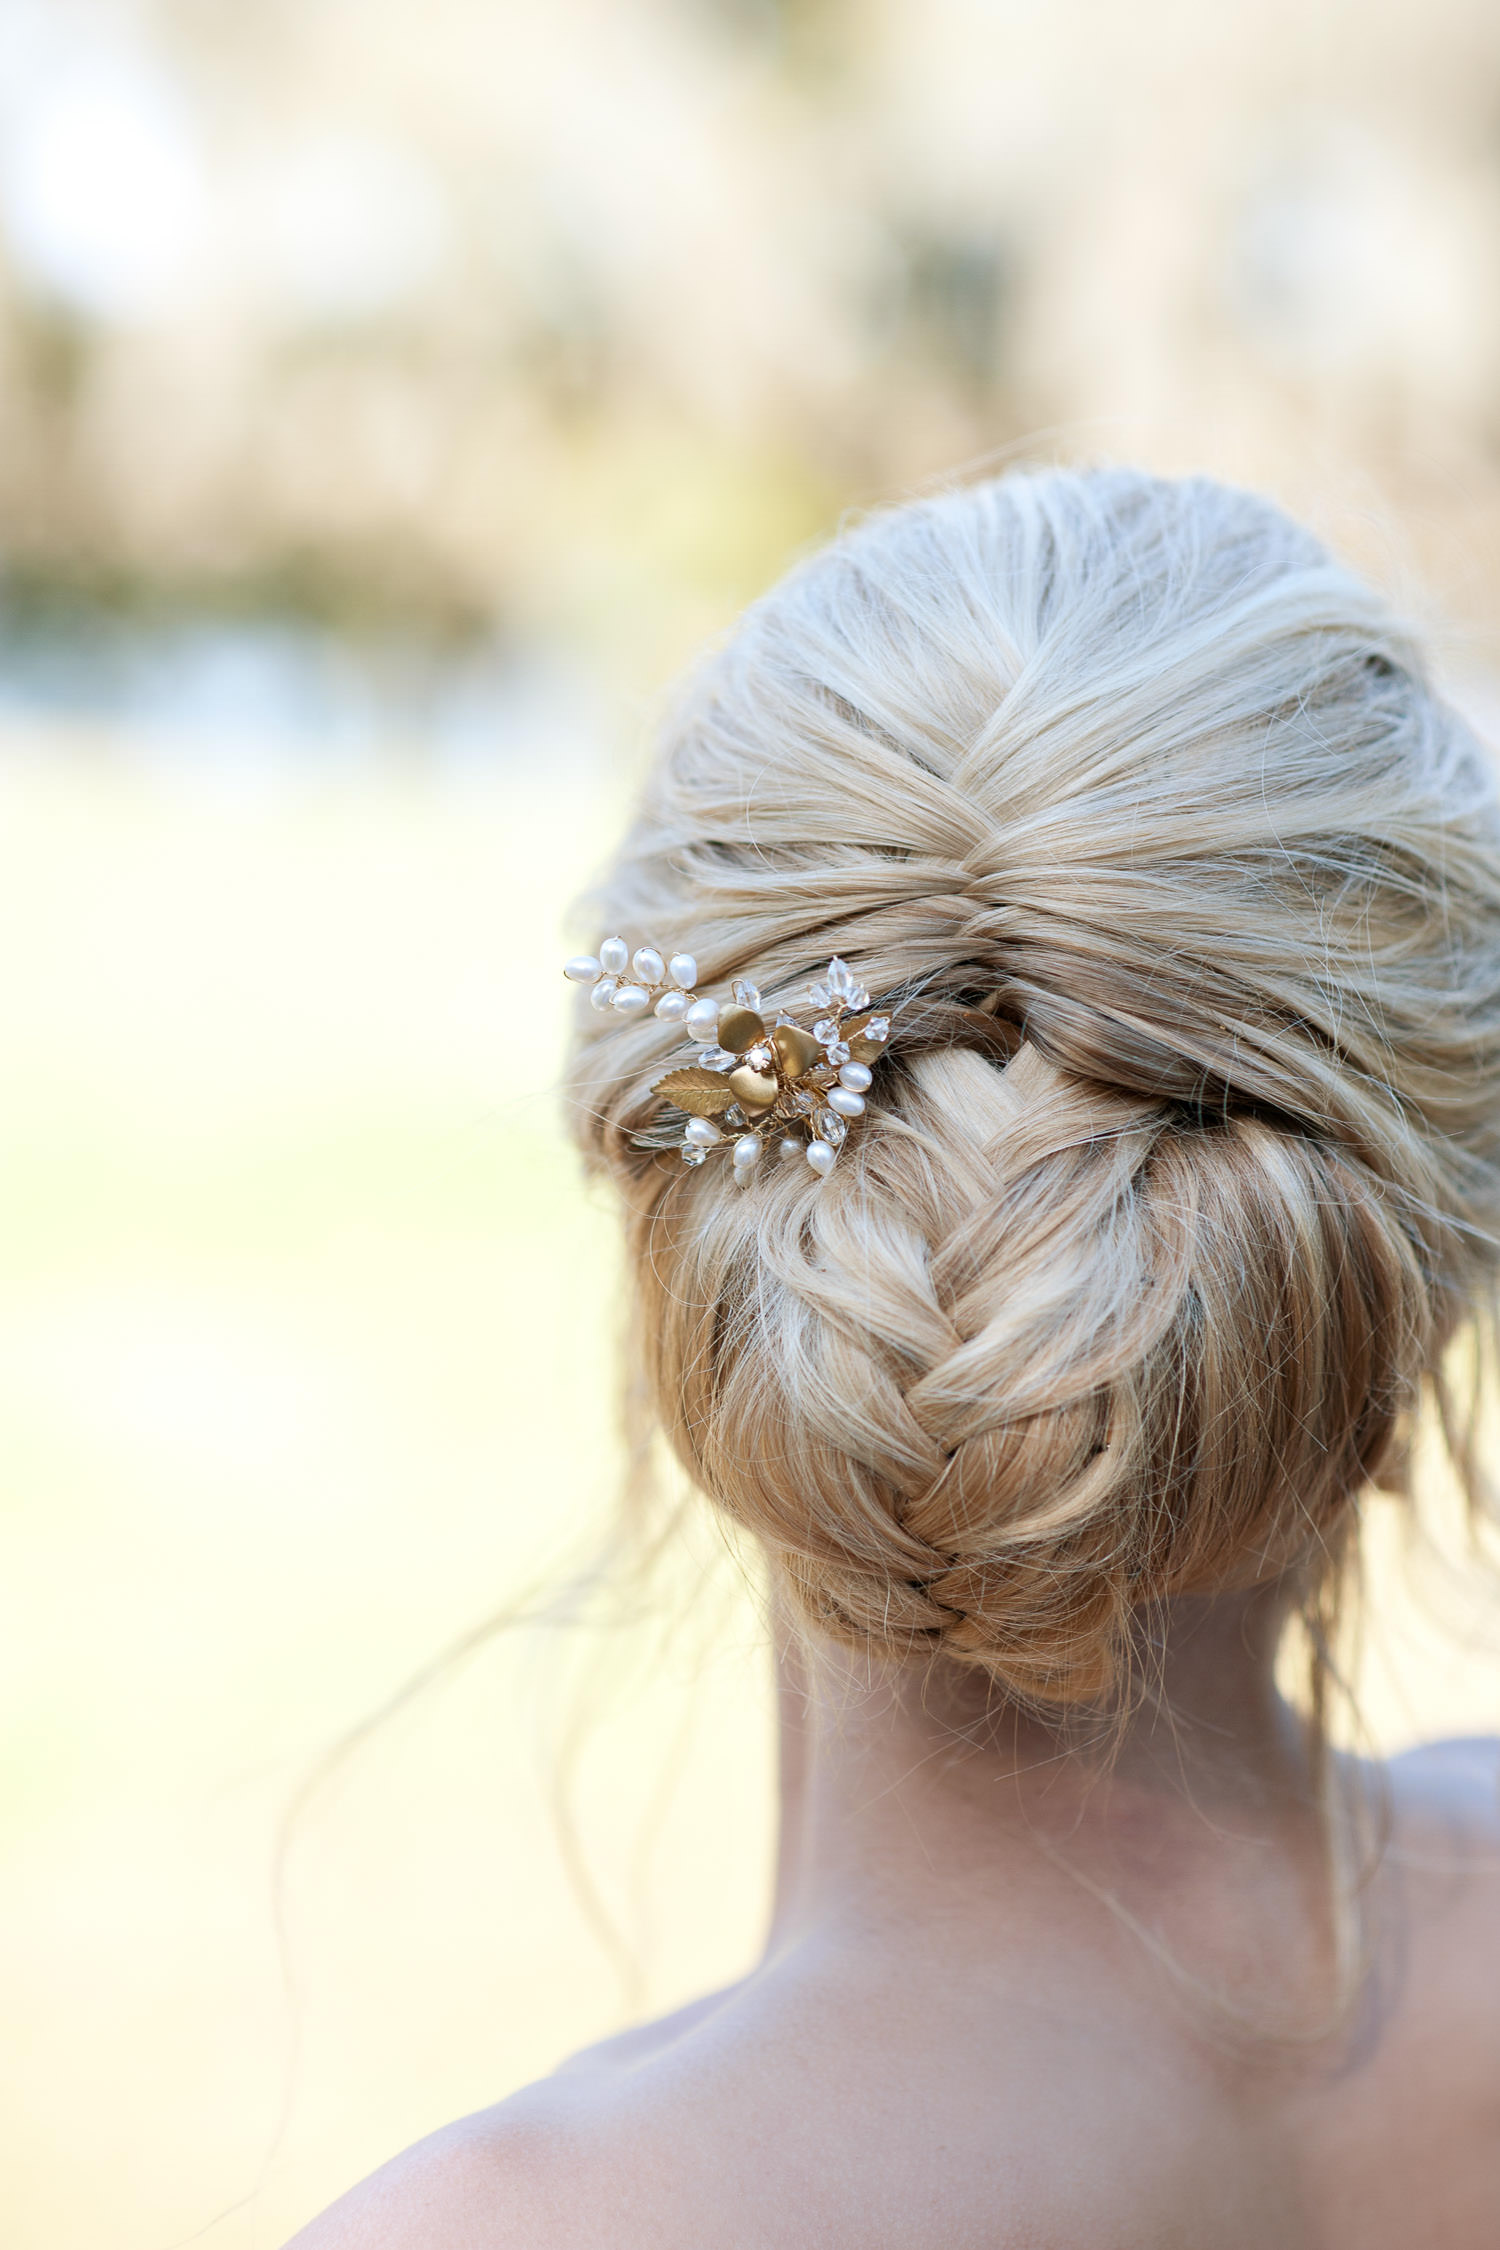 Classic updo for a modern bride captured by Tara Whittaker Photography